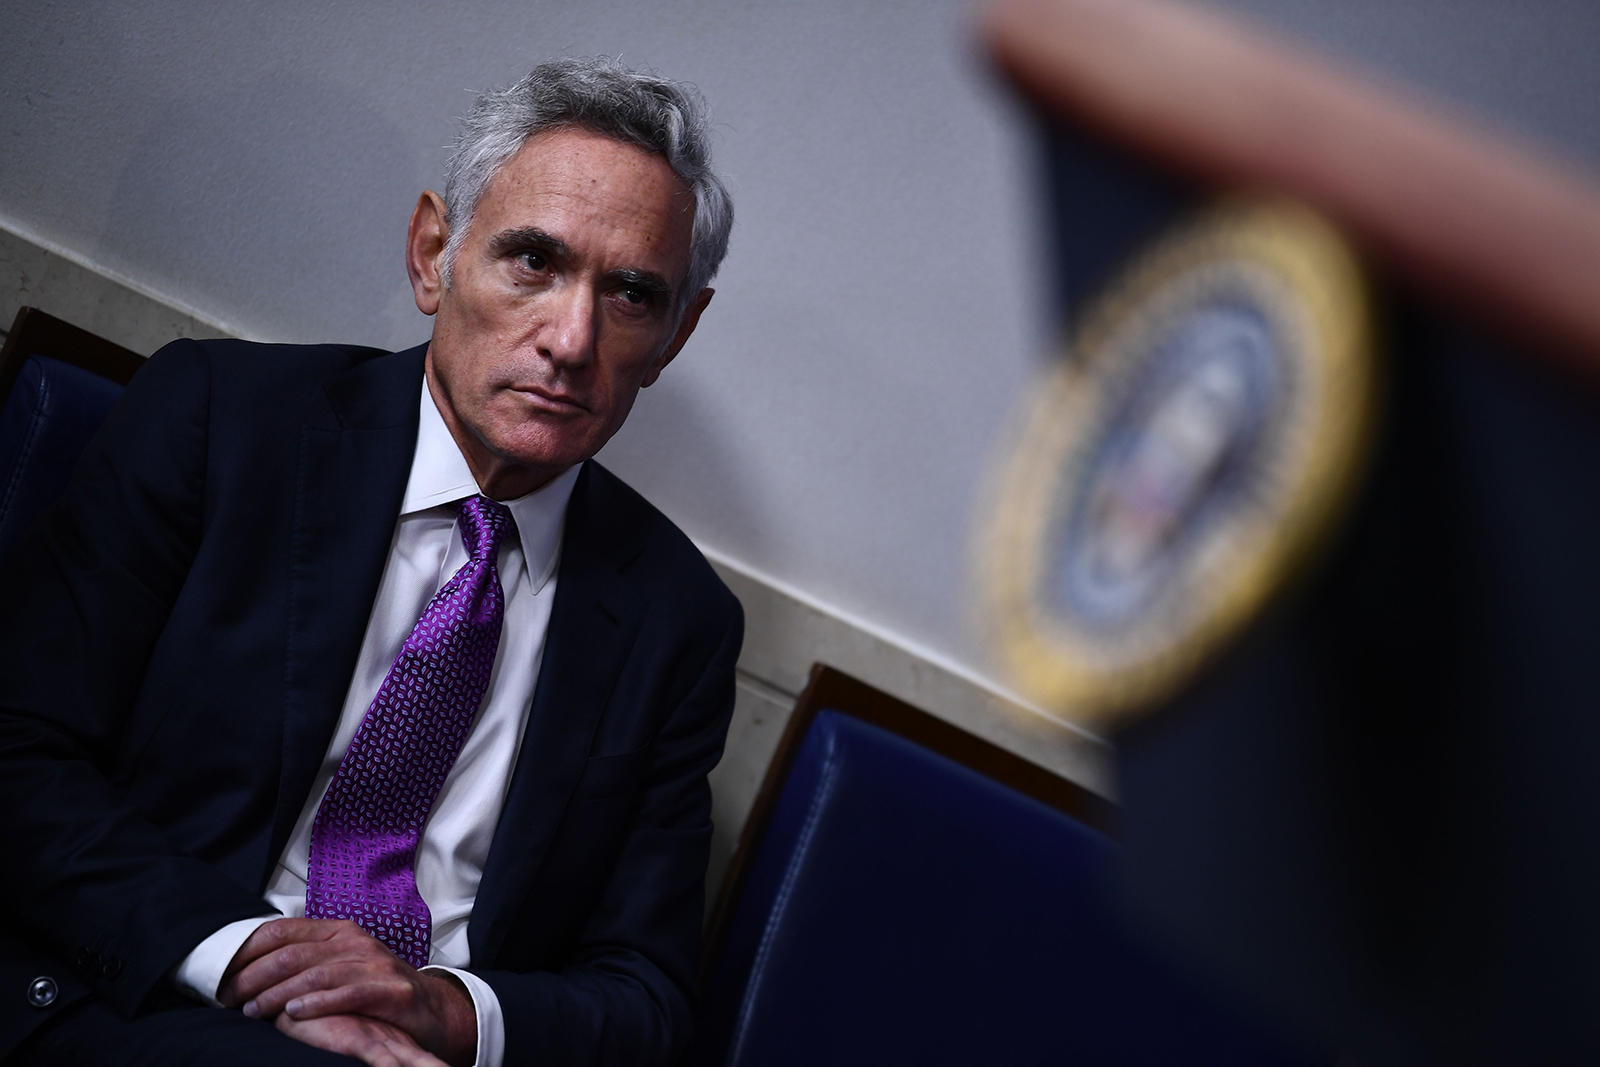 Member of the coronavirus task force Dr. Scott Atlas listens to US President Donald Trump during a briefing at the White House in Washington, DC on August 10.